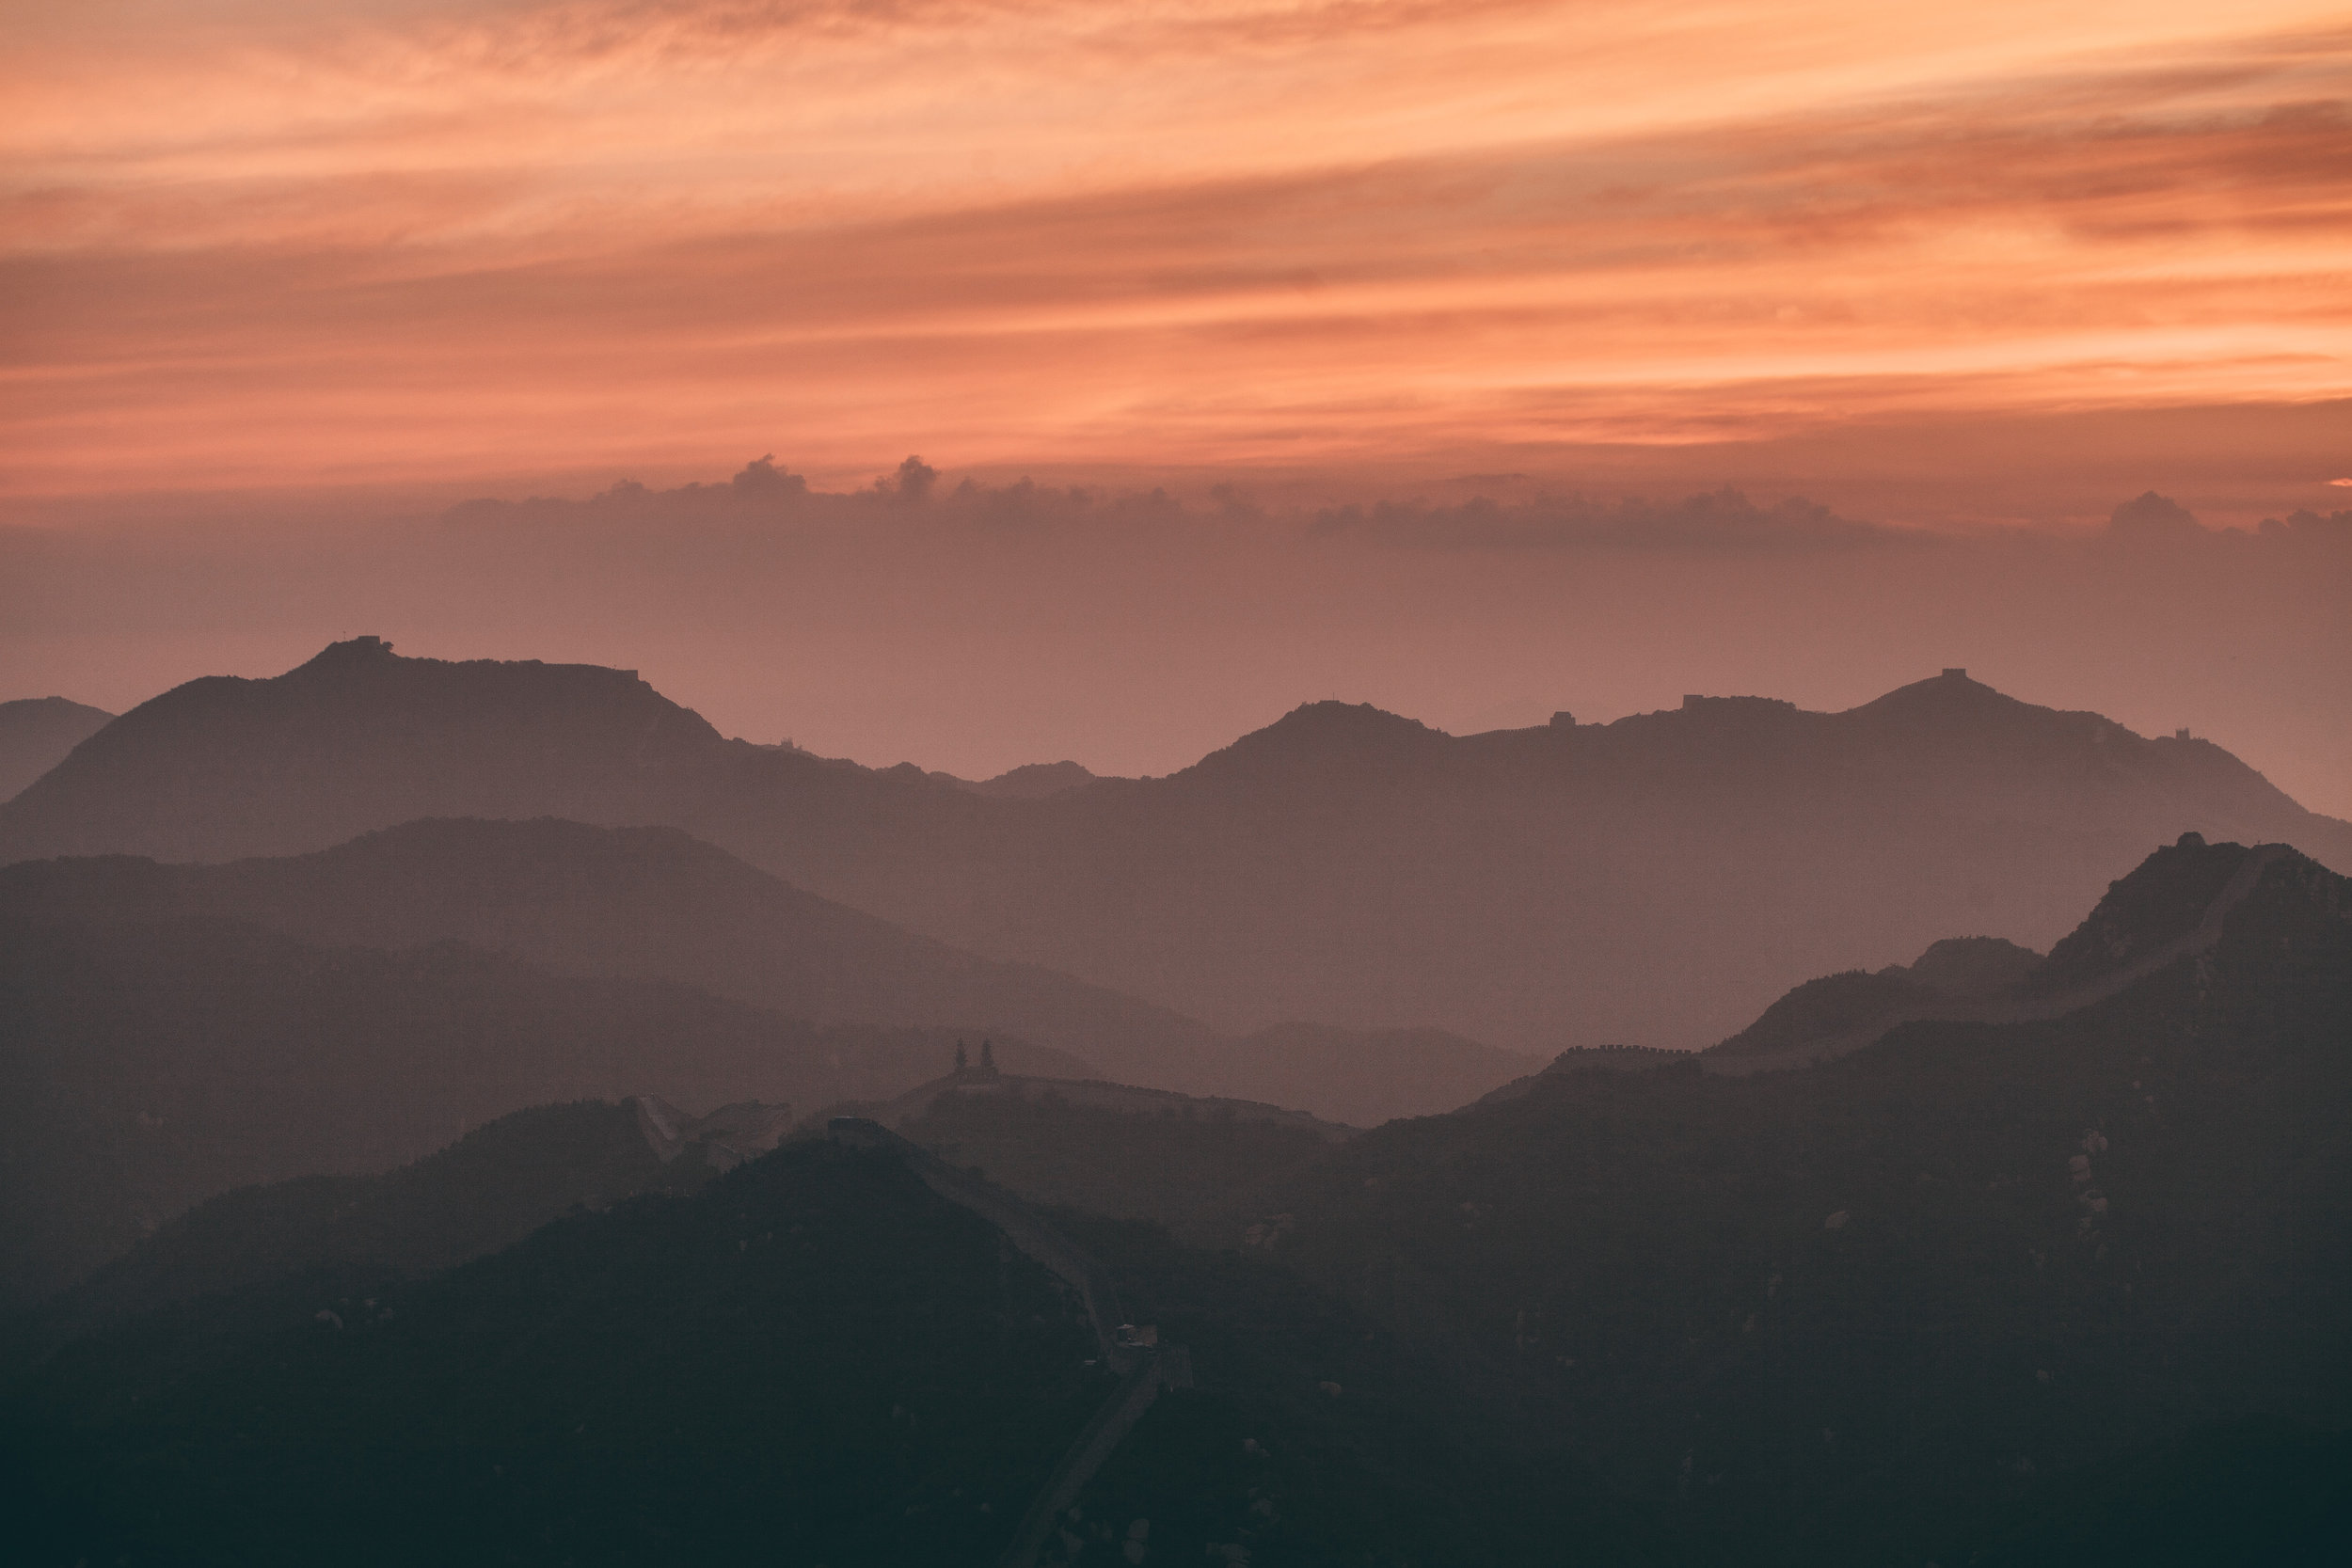 sunset-on-the-great-wall.jpg